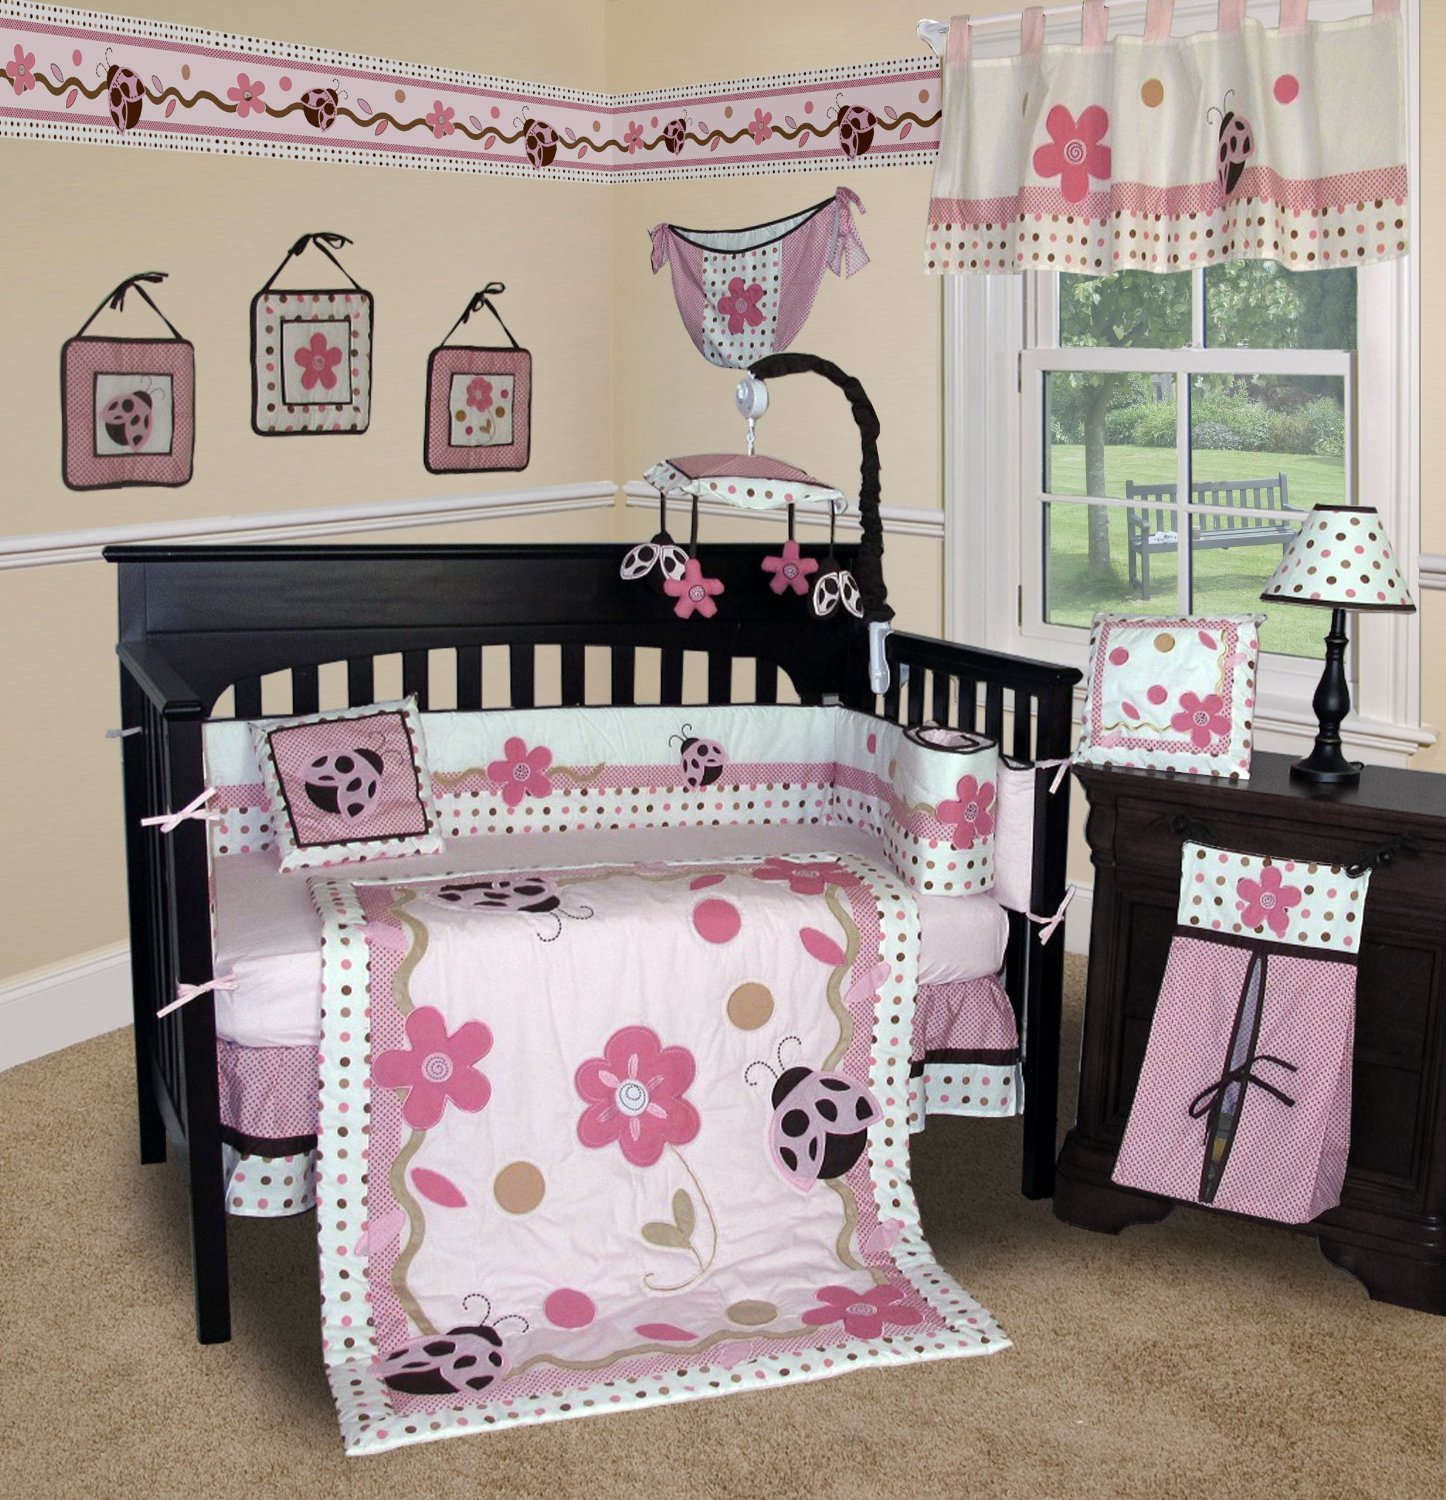 SISI Baby Girl Boutique - Ladybug 13 PCS Crib Bedding by Sisi   B005H7PH0E